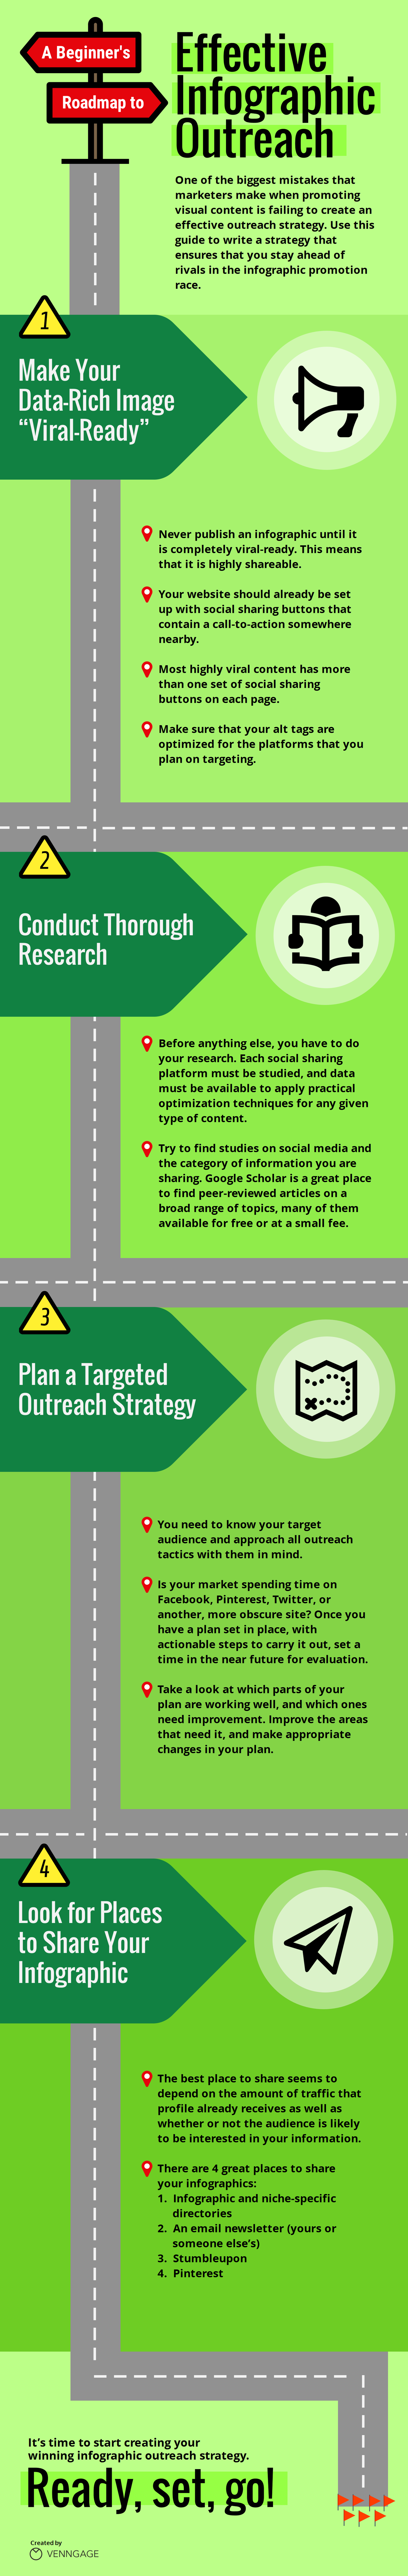 Infographic: Outreach Using Infographics | Venngage